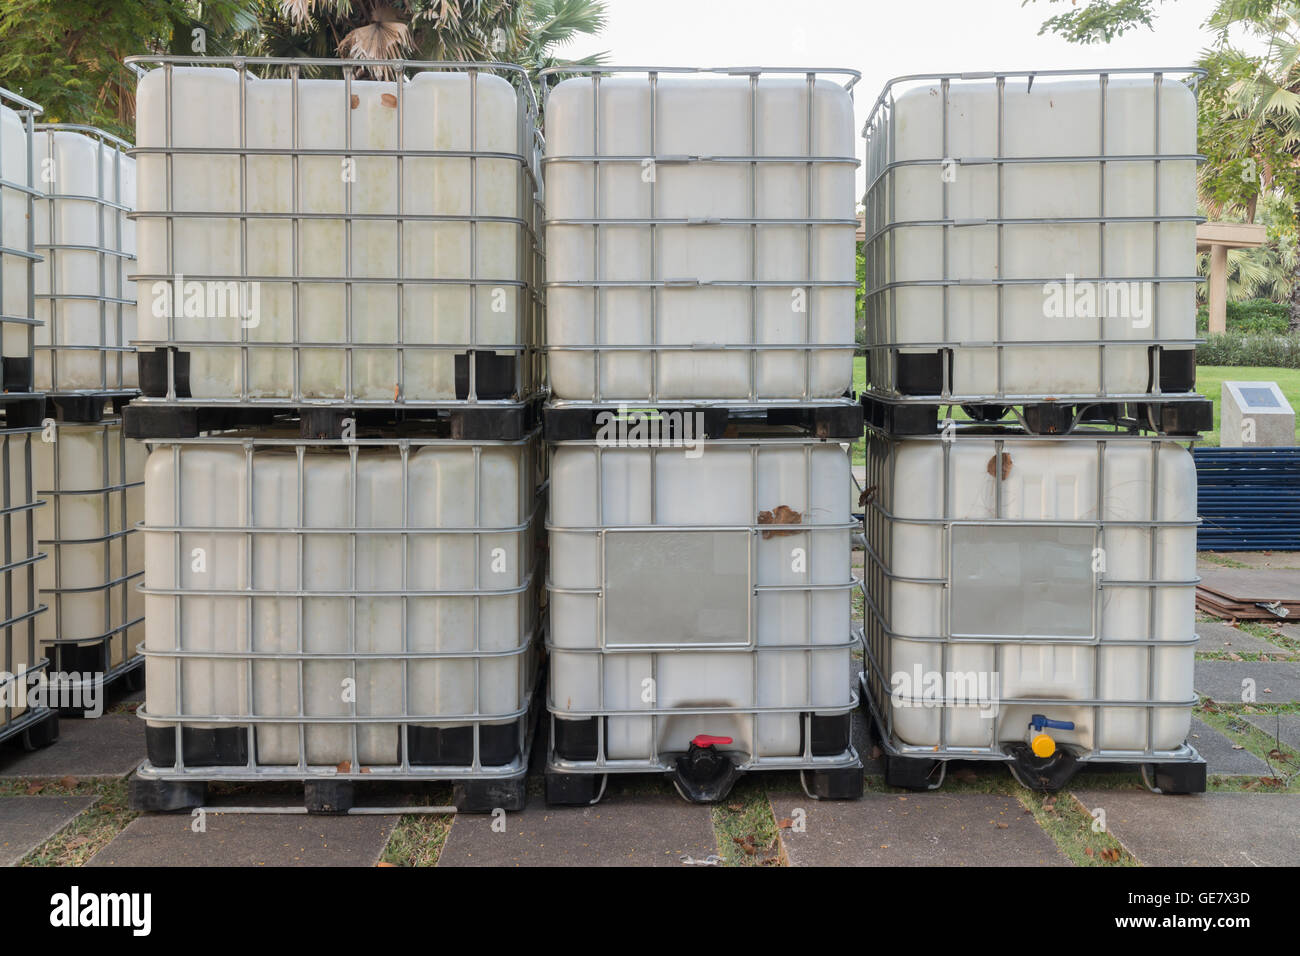 Bulk fluid shipping containers on location ready for shipment - Stock Image